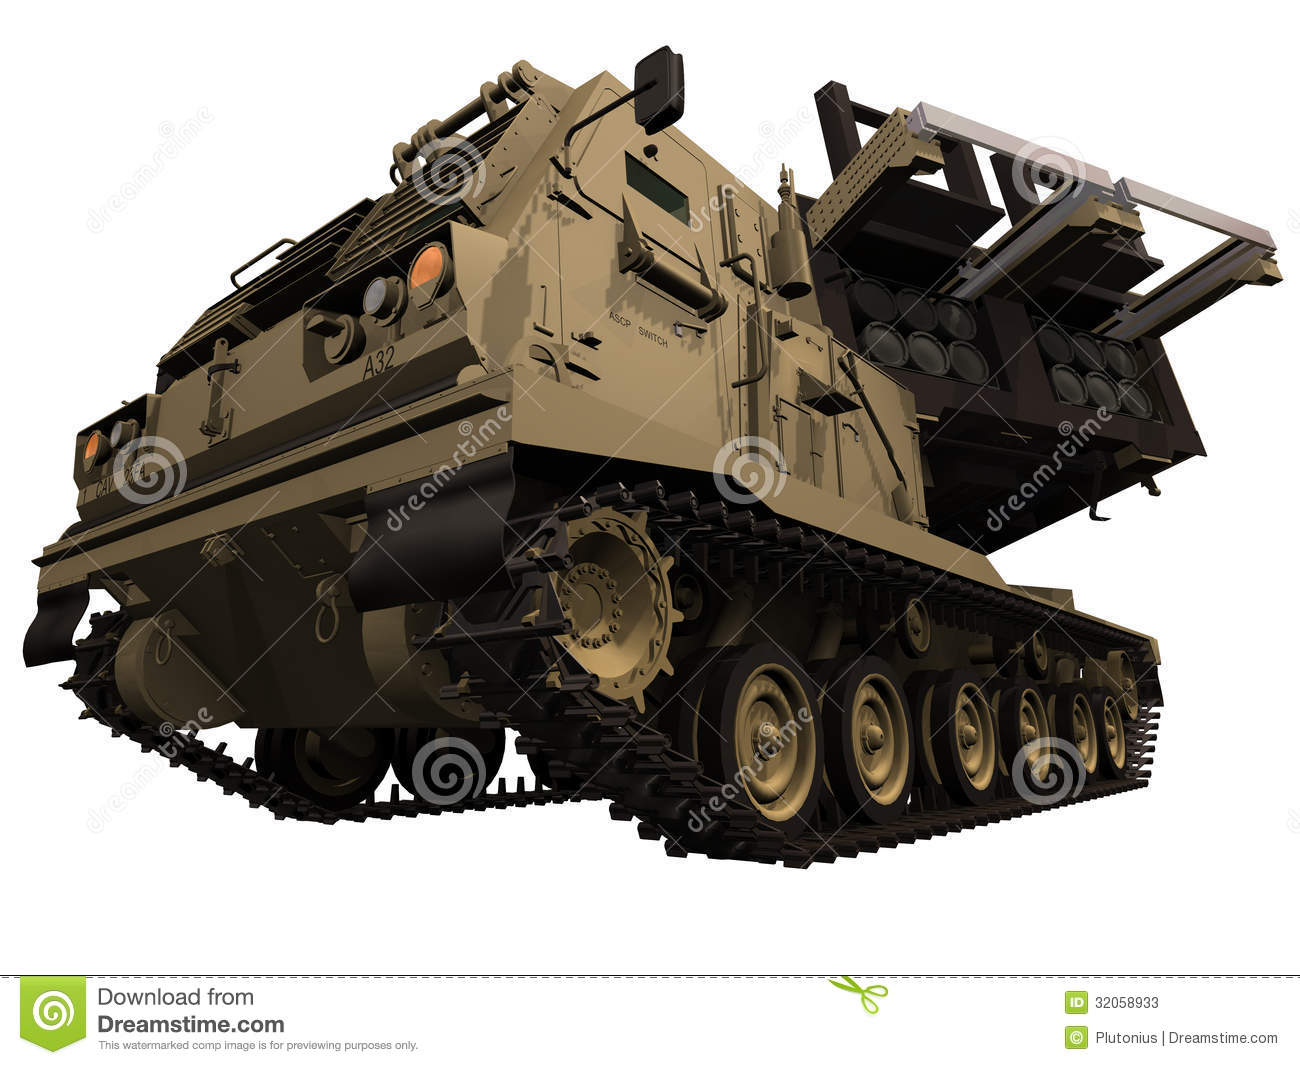 3d Rendering Of A M270 MLRS Front View Stock Photos.